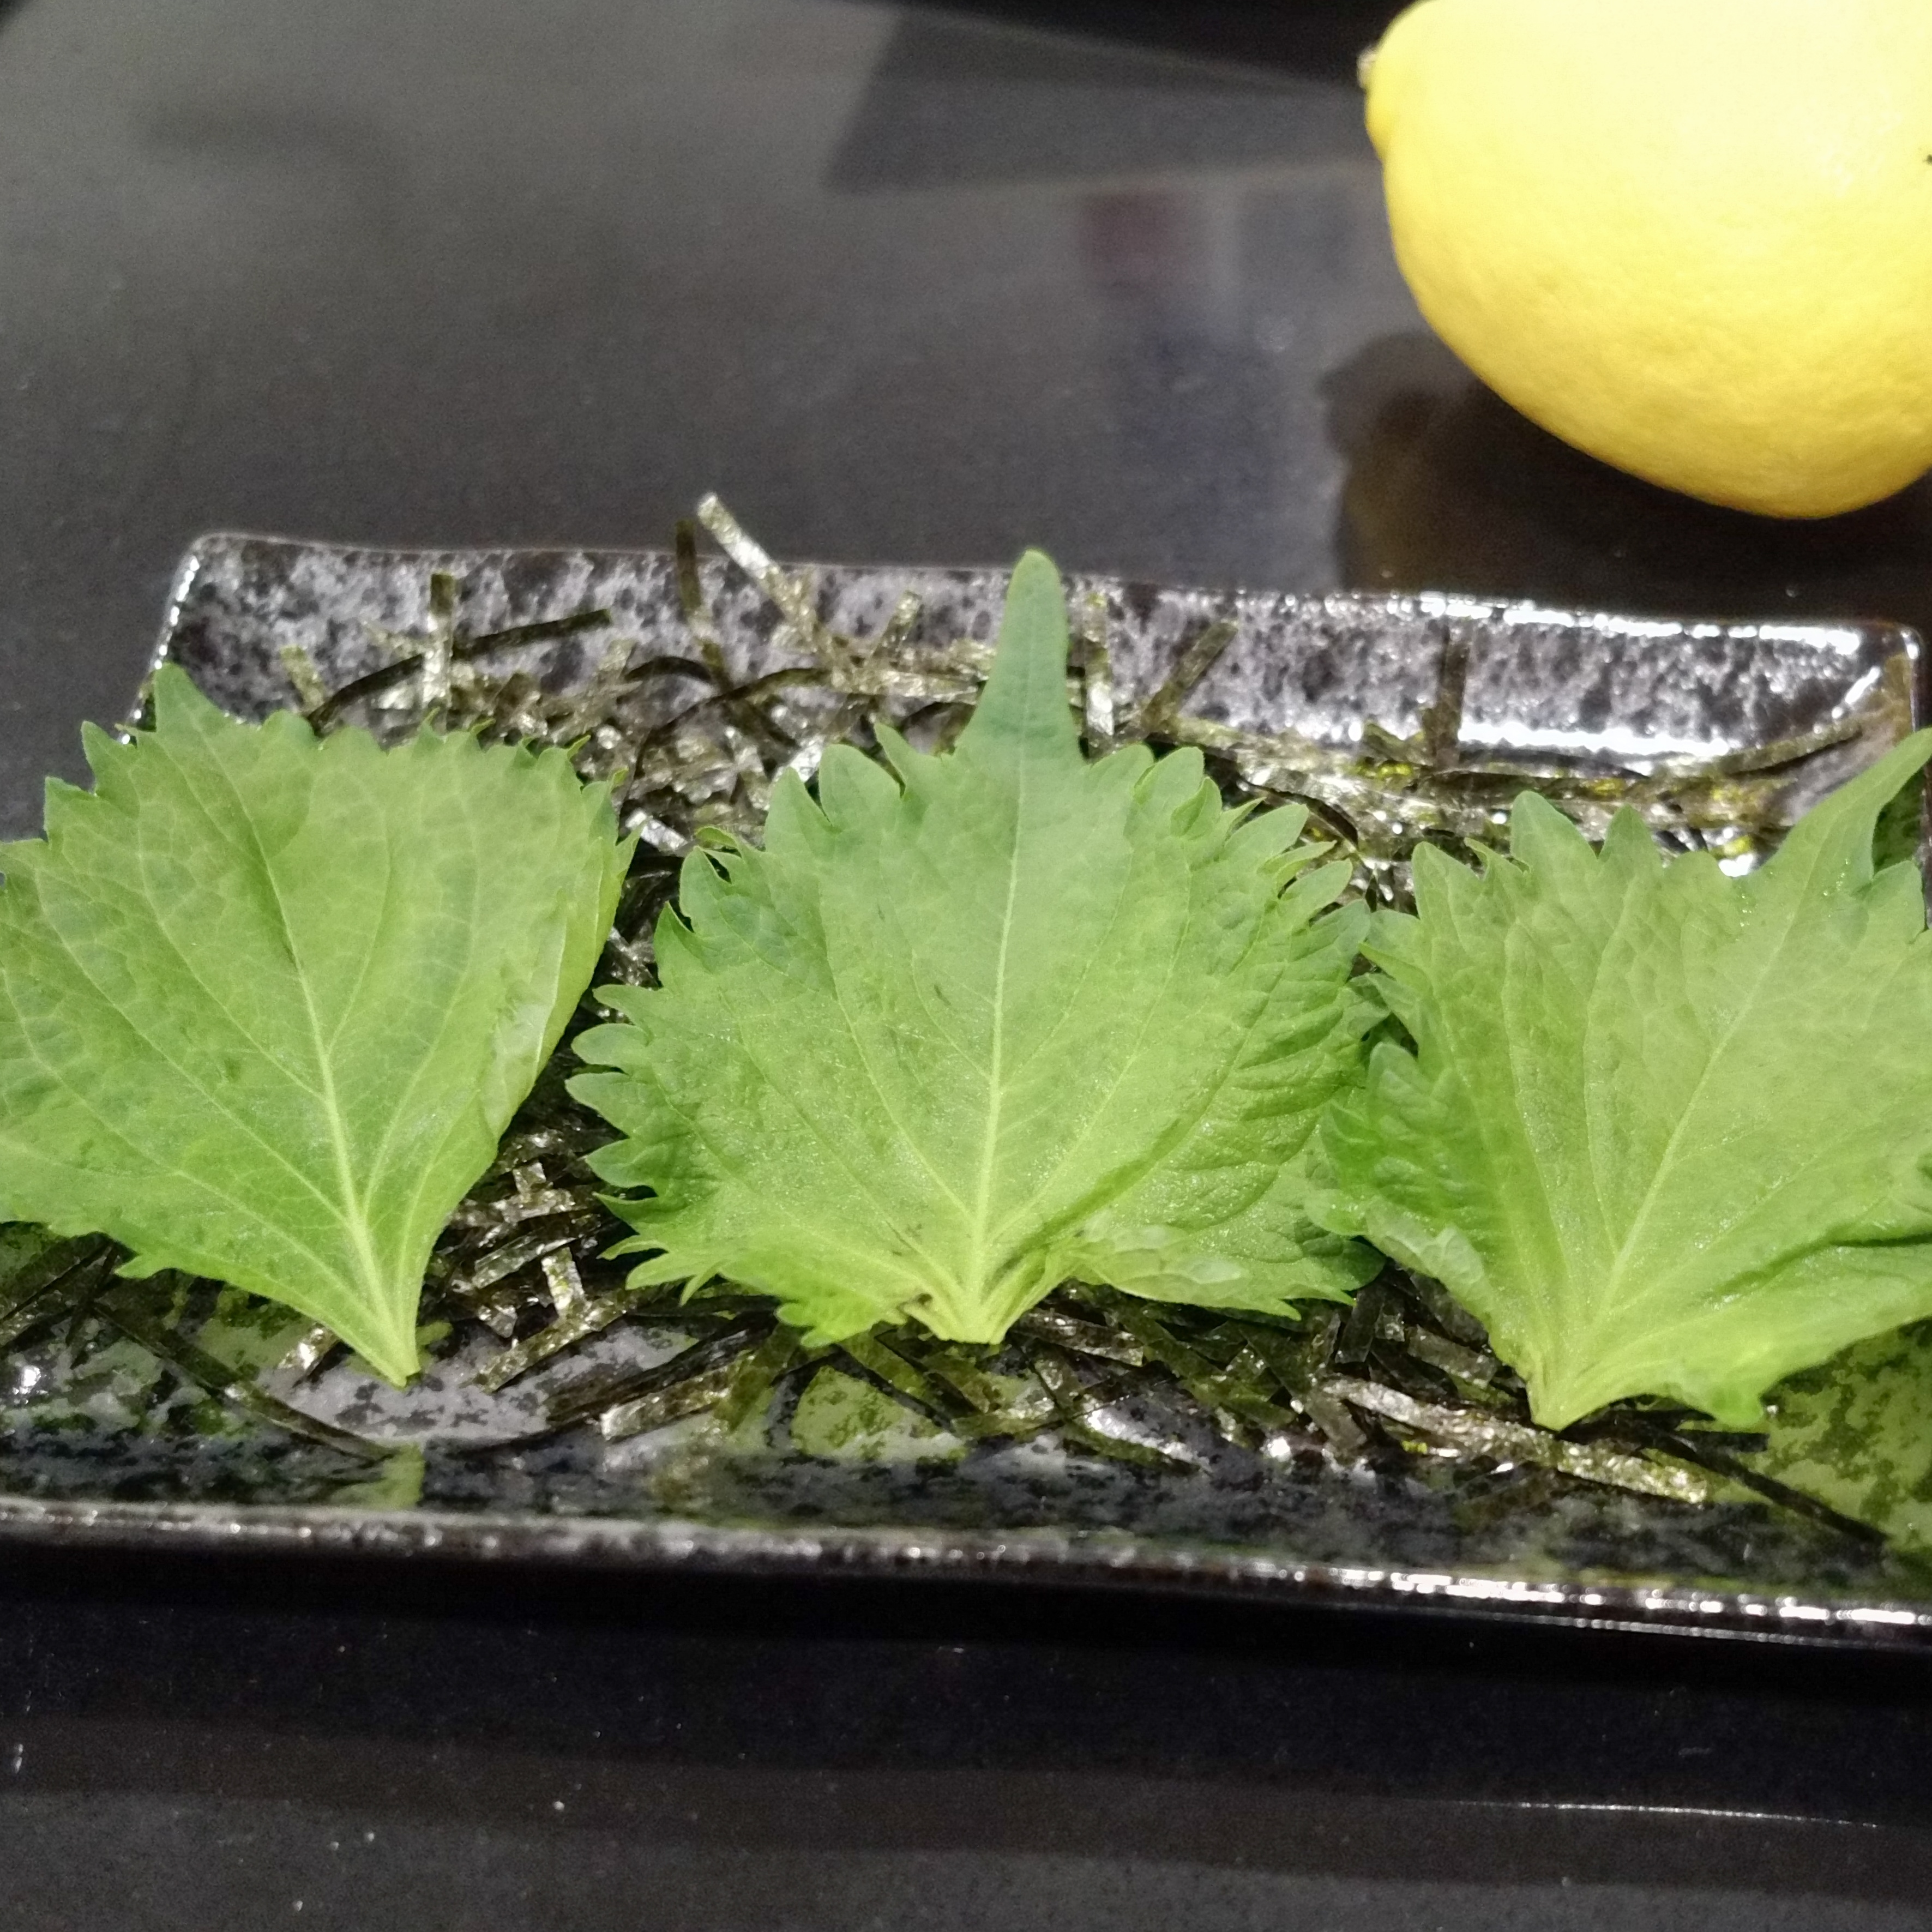 Plating the Shiso Leaves